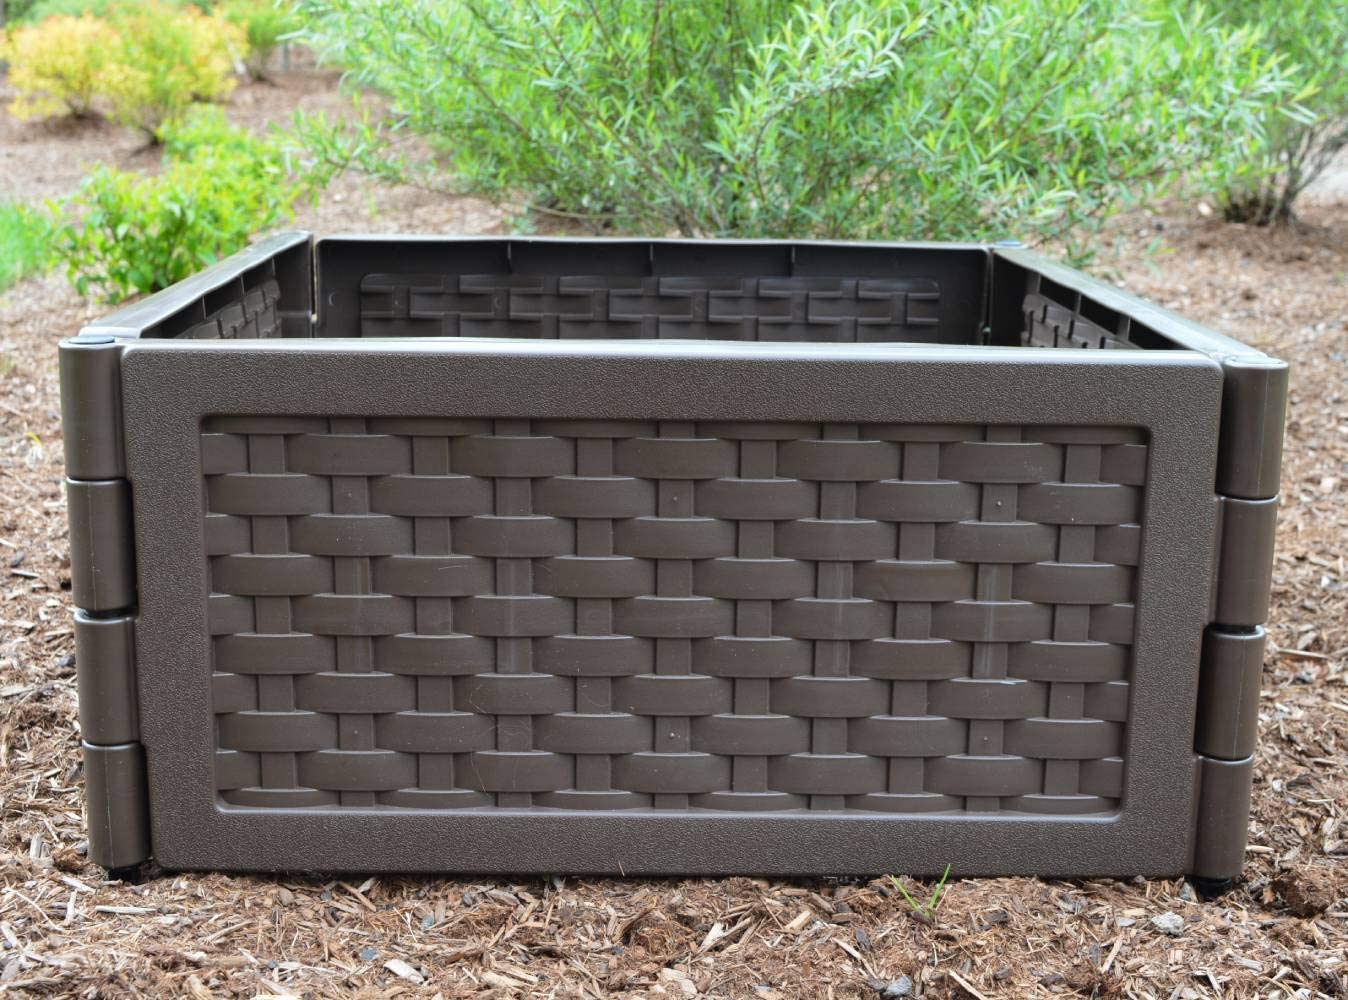 Zenport F-580 Modular Raised Garden Bed, Brown